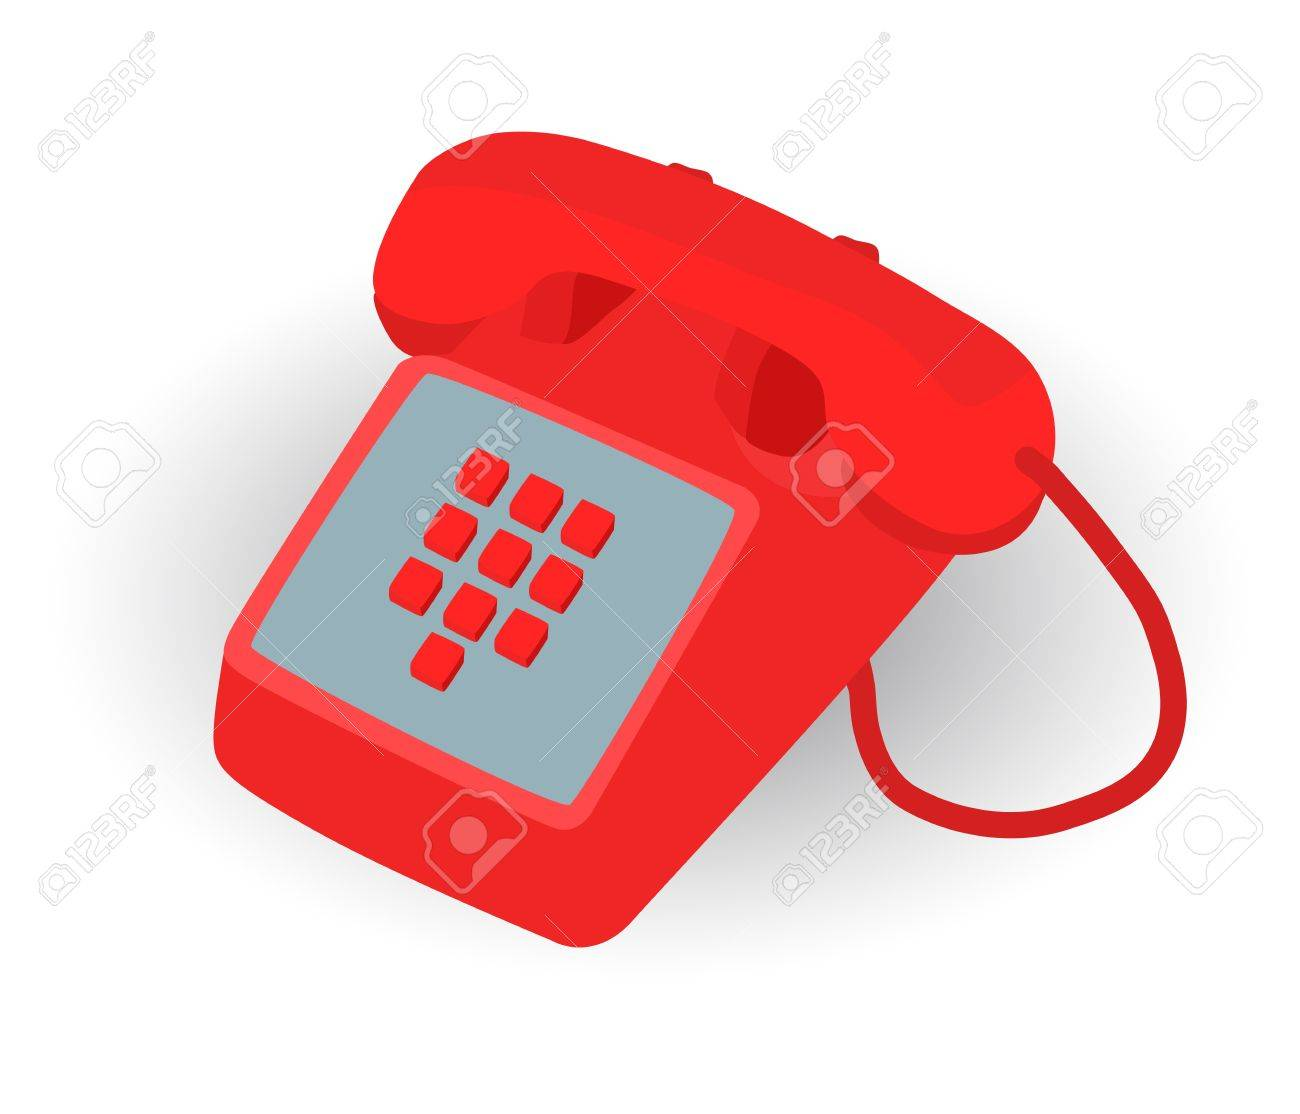 Red Phone For Emergency Call To 911 Royalty Free Cliparts, Vectors ...